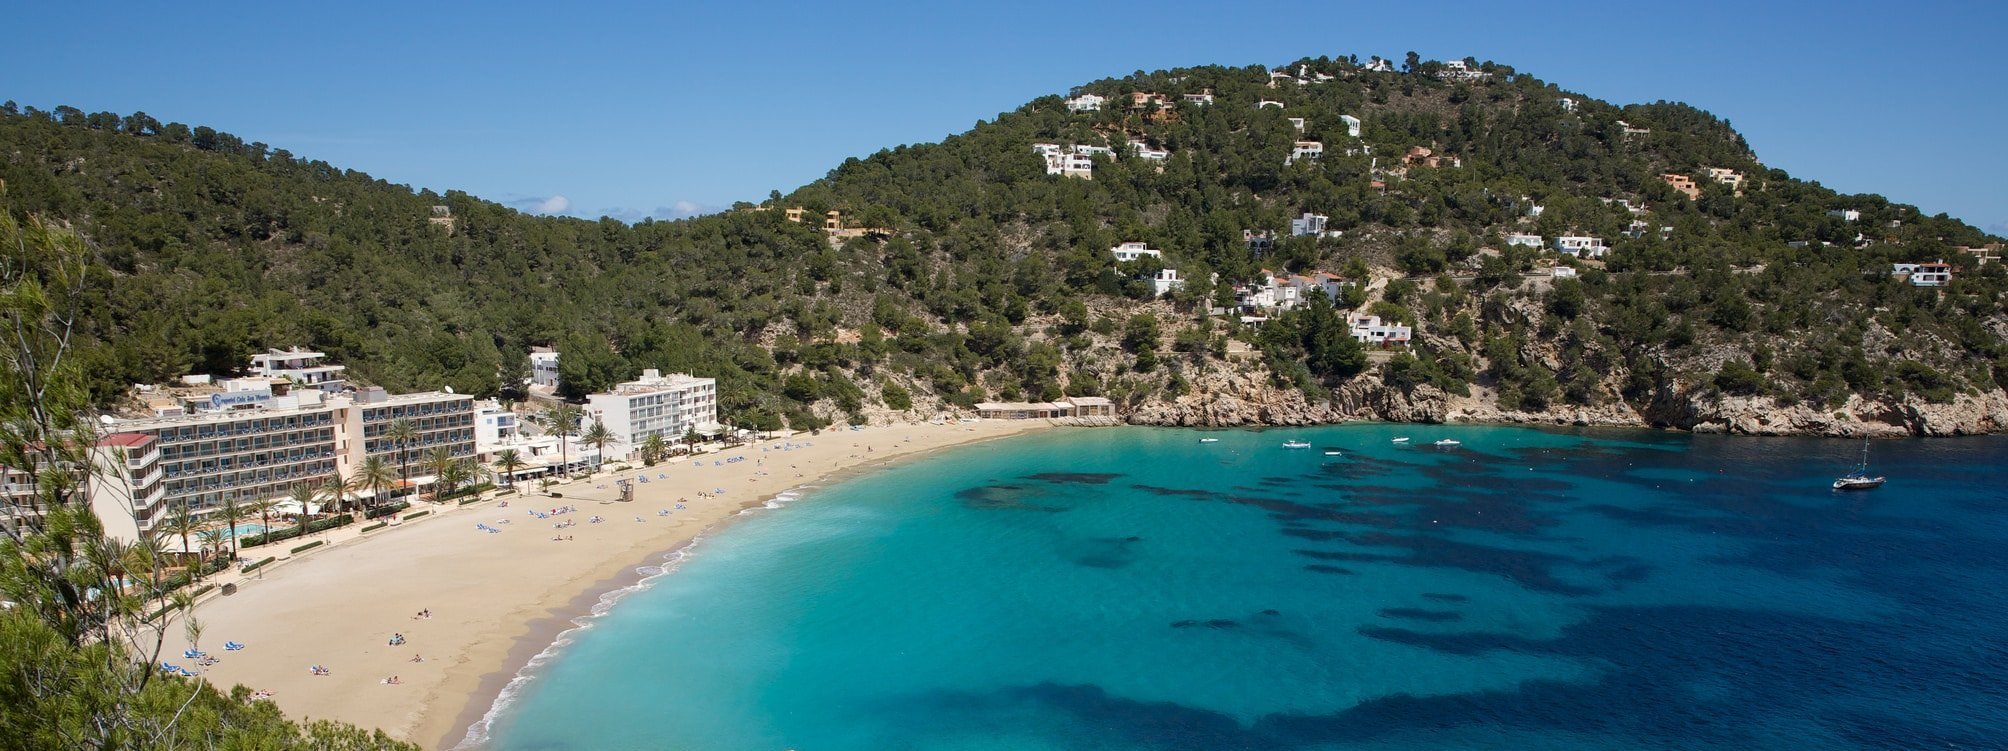 Cala de Sant Vicent property